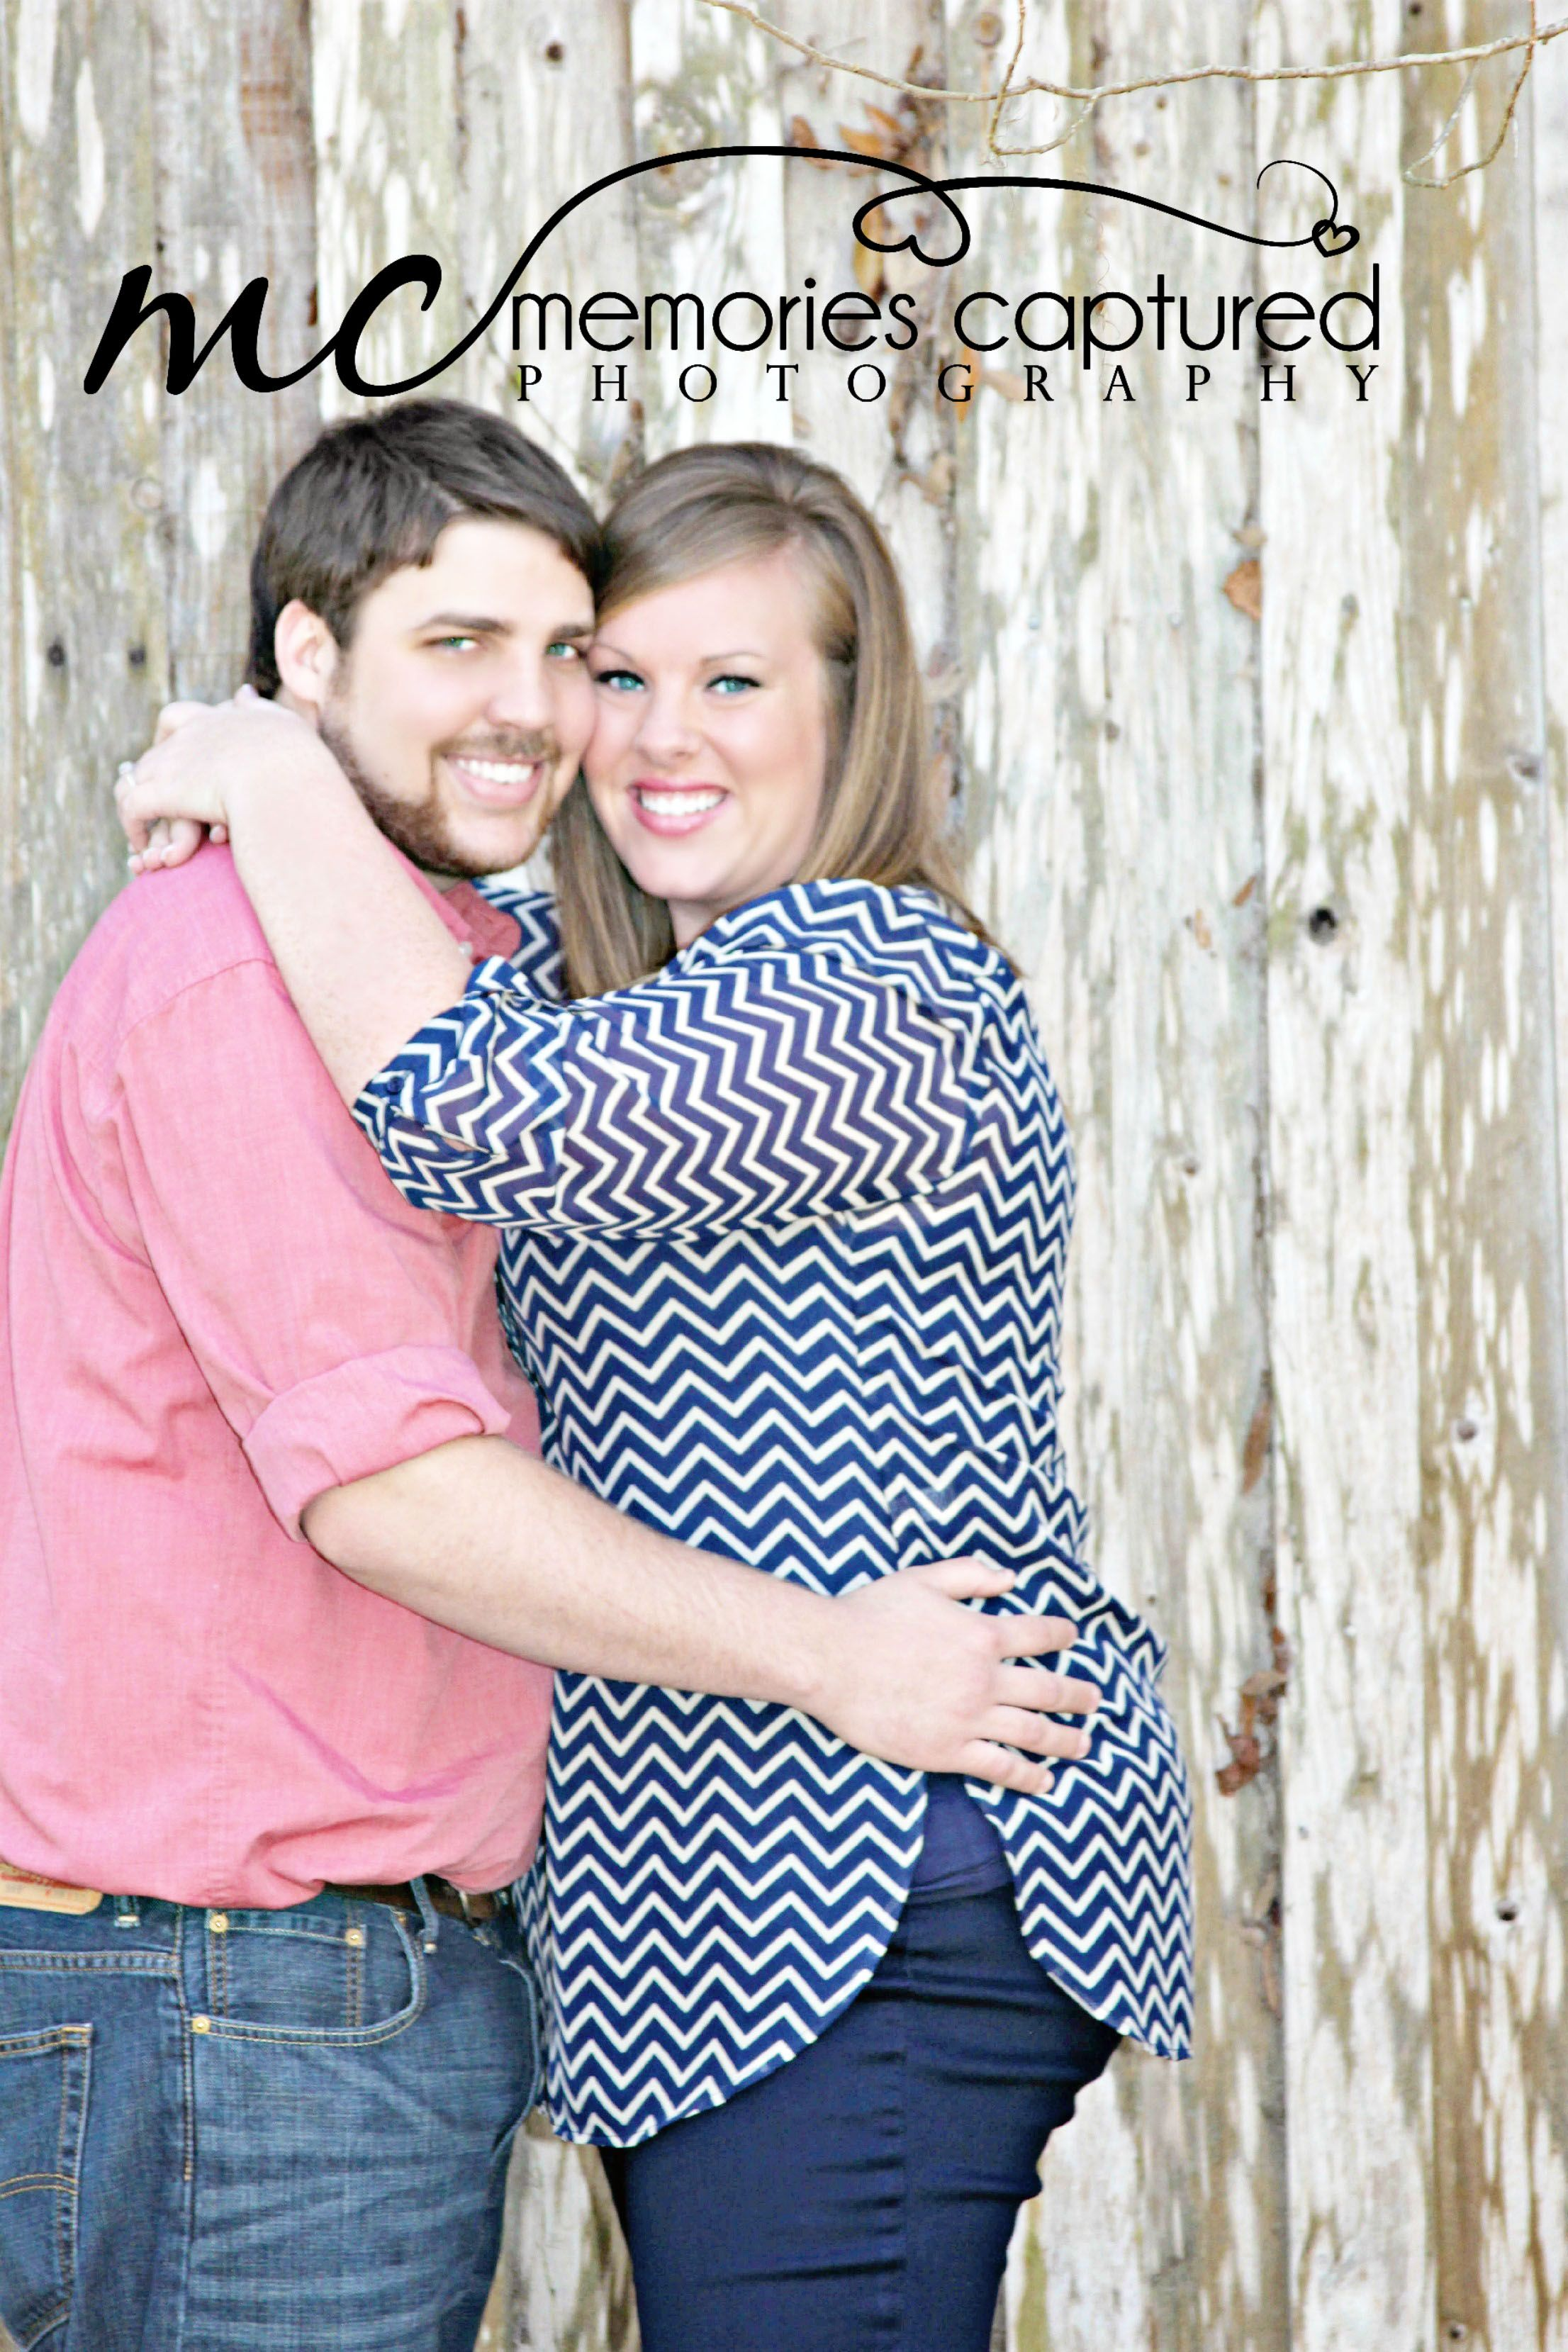 Engagement photography at Memories Captured Photography Lyons, Georgia #memoriescapturedphotography #engagementphotography #georgiaphotography